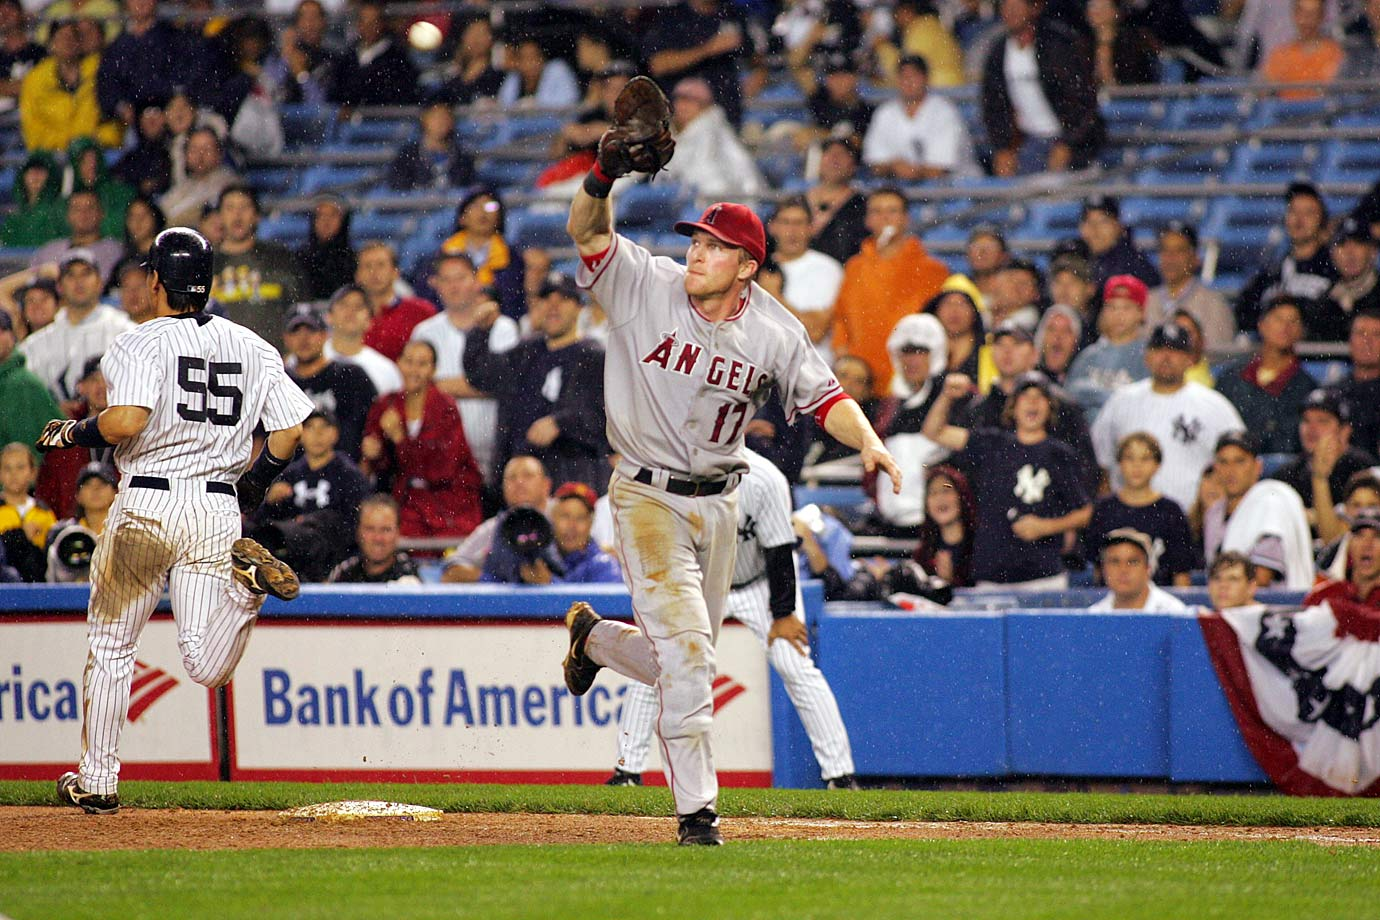 Erstad was a dual-sport star at the University of Nebraska: He was the starting punter for the Cornhuskers' football team and was part of the 1994 National Championship team while also leading the school's baseball team. Erstad made his MLB debut the same year he was drafted, ultimately spending 10 seasons with the Angels and winning a World Series in Anaheim in 2002. He also made the All-Star team twice and won three Gold Gloves.